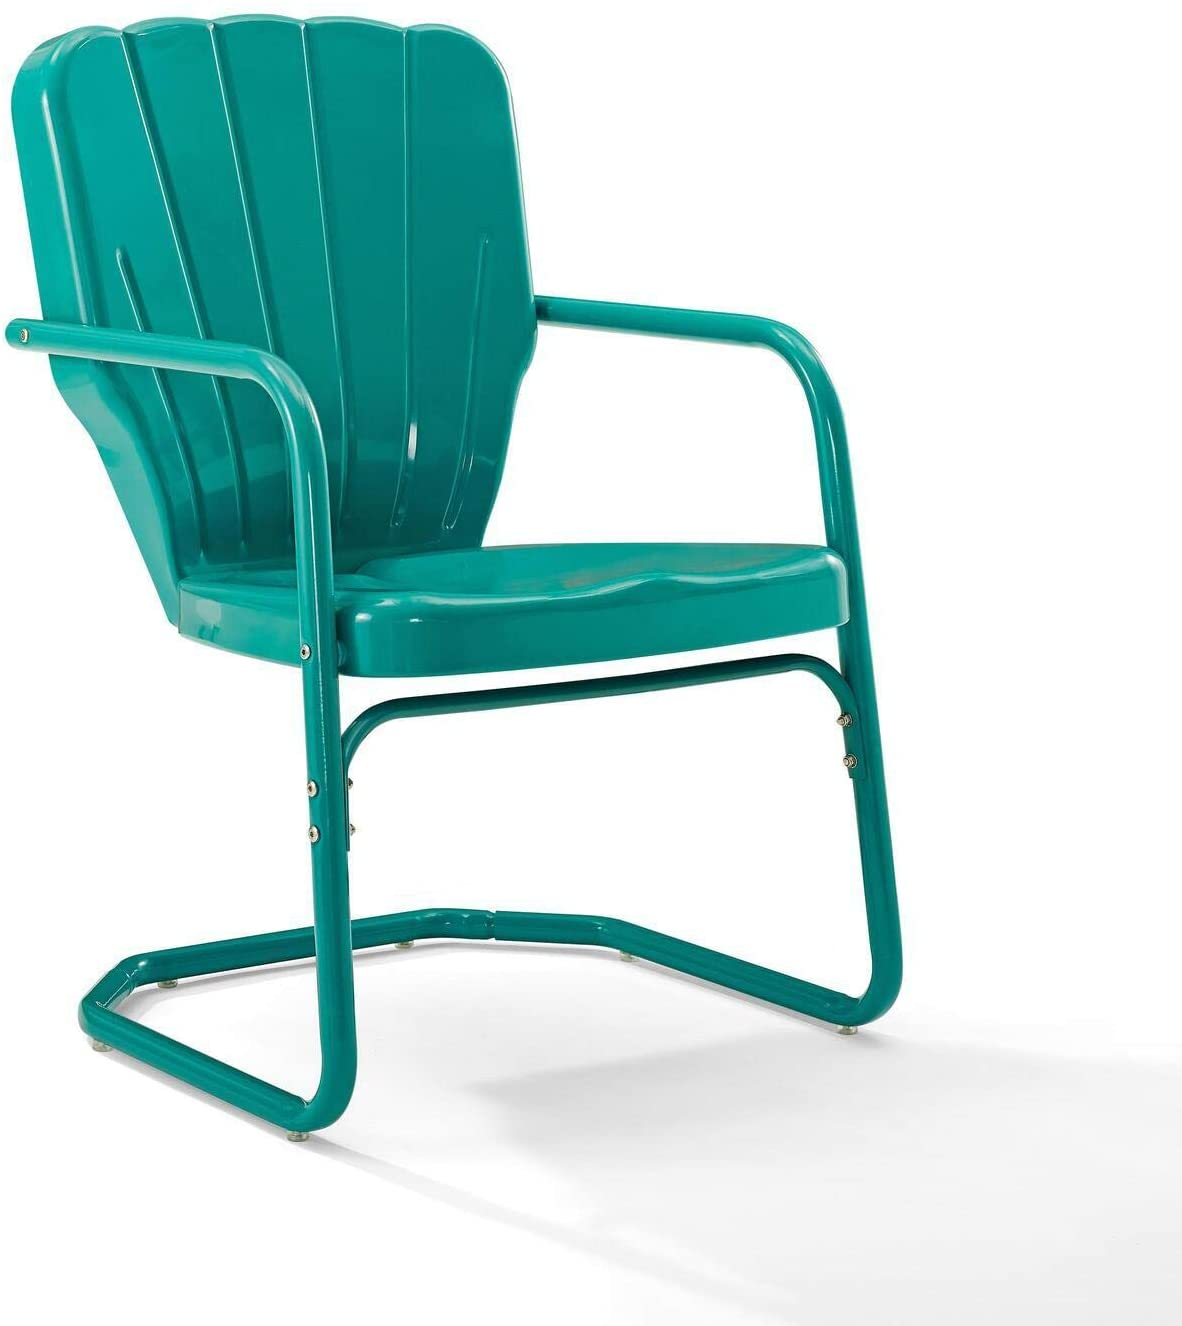 Ridgeland Crosley Metal Lawn Chair